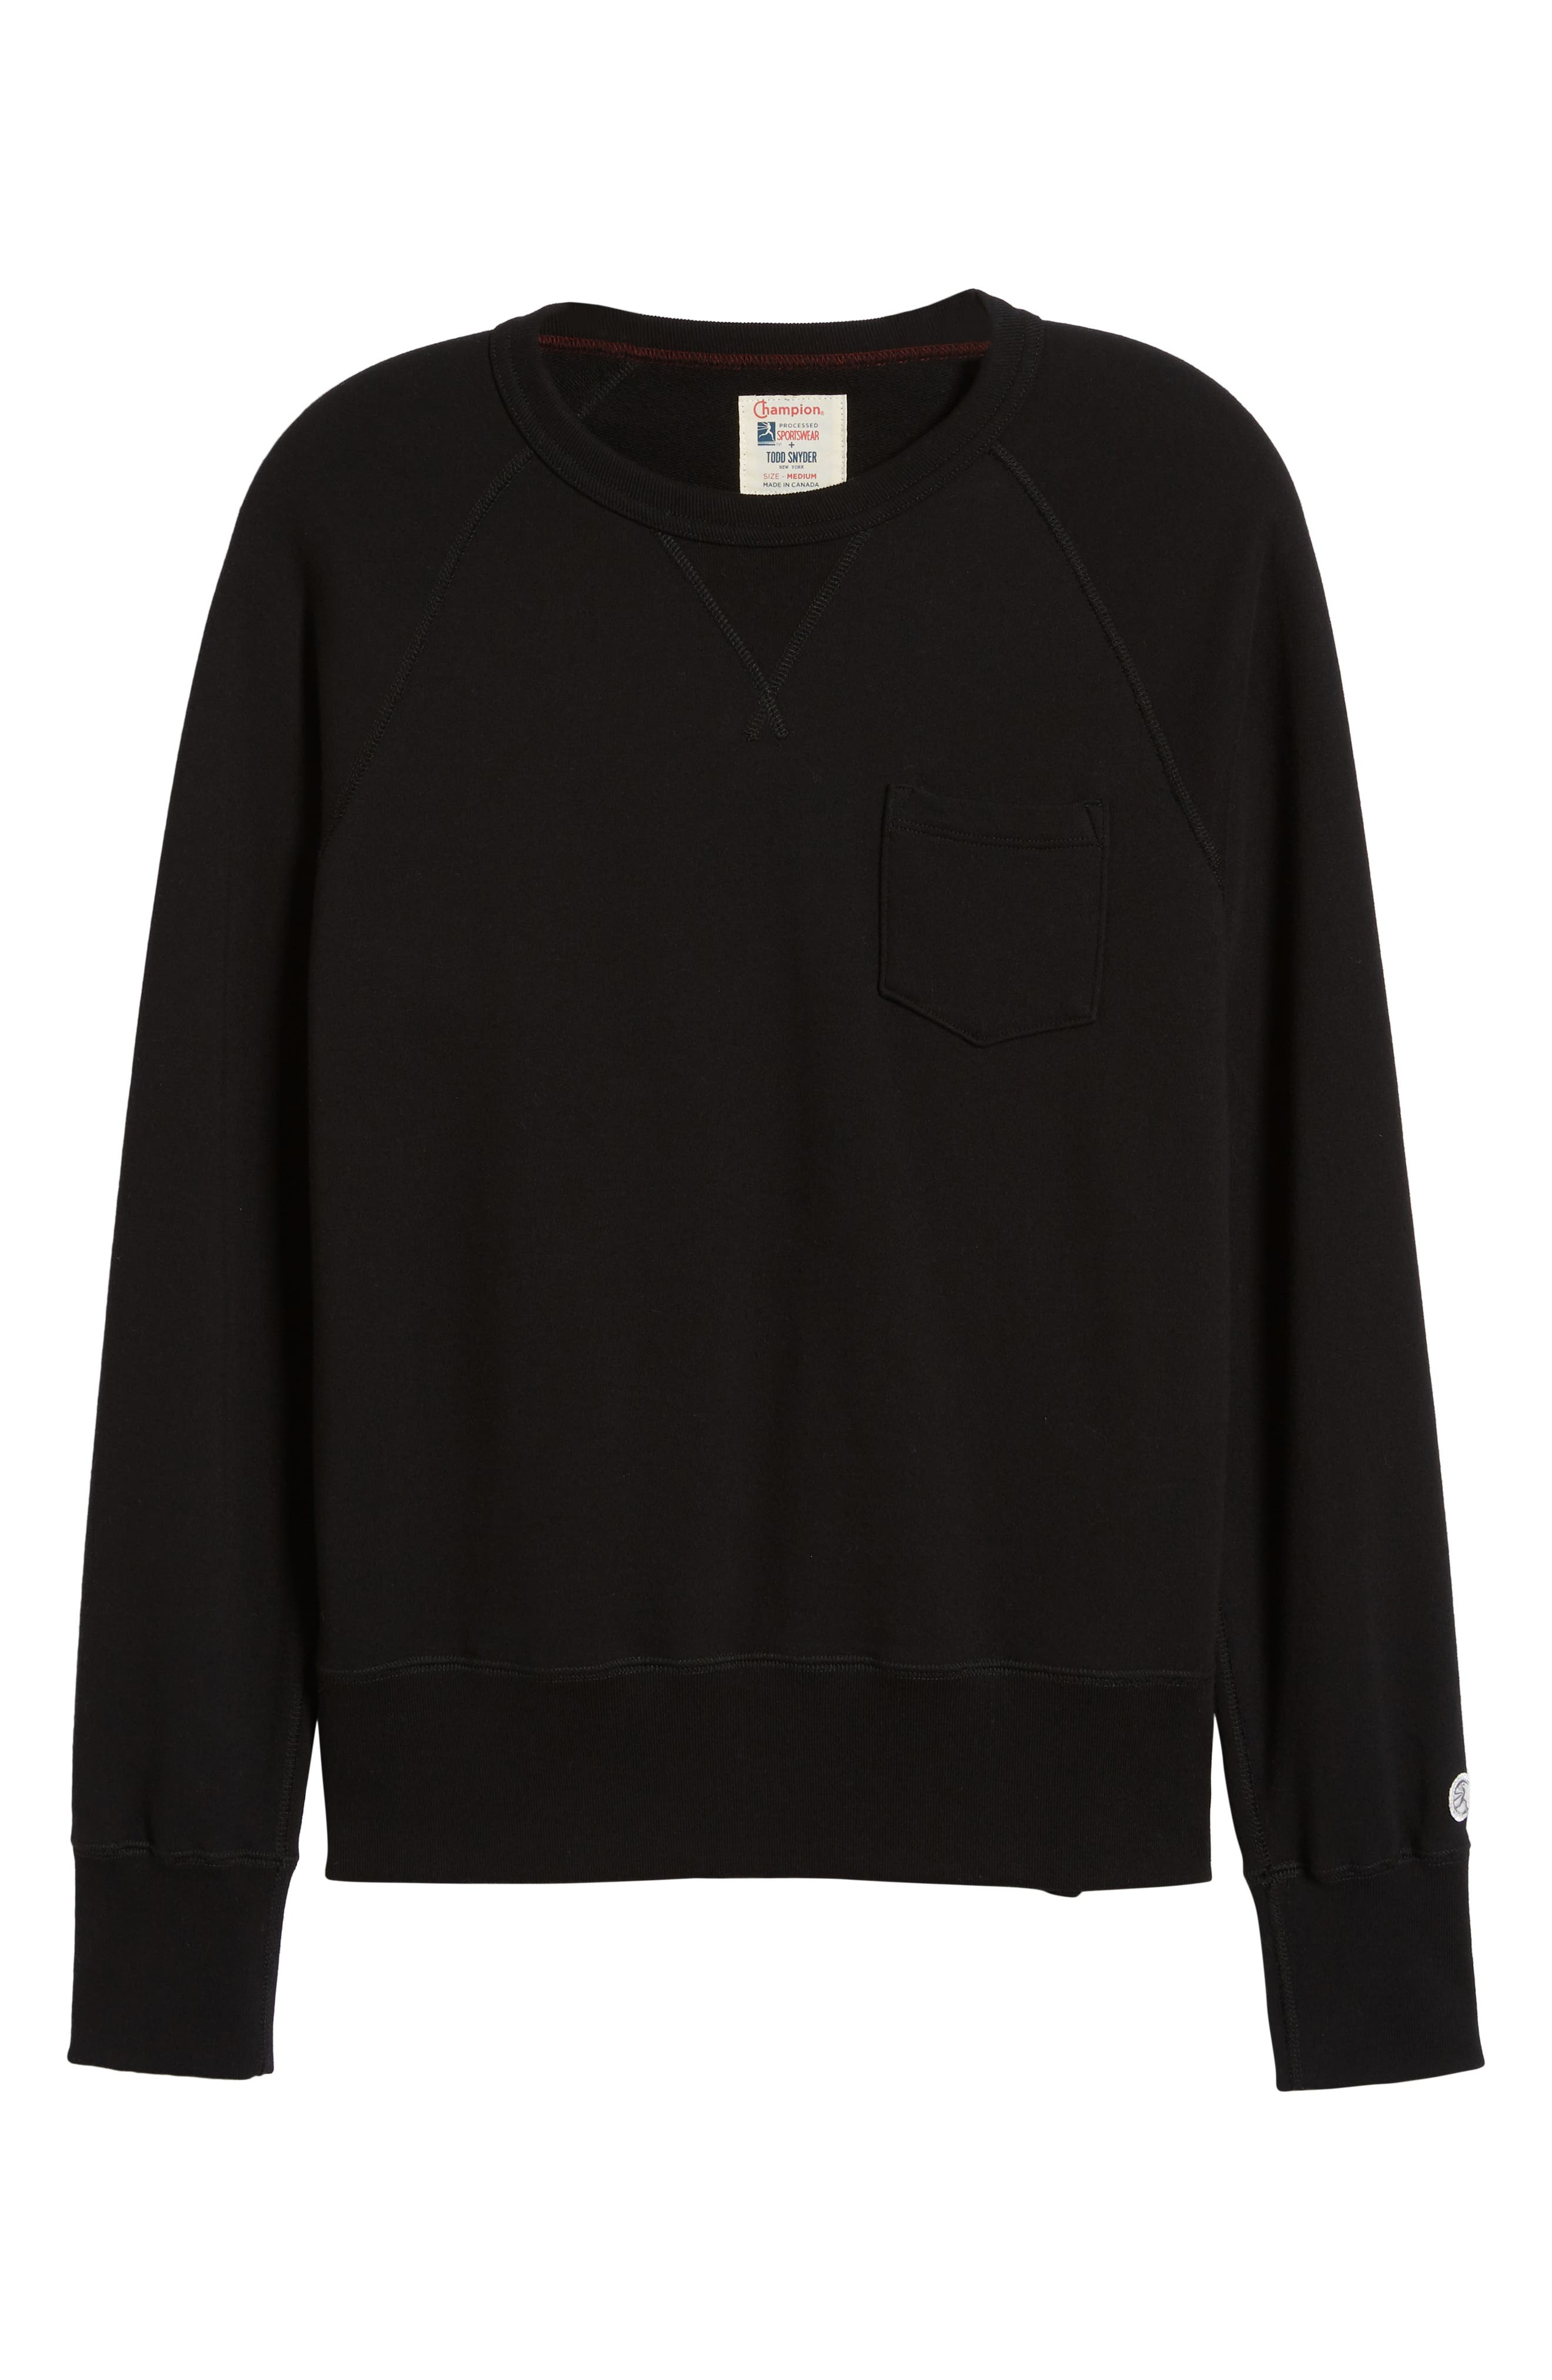 TODD SNYDER + CHAMPION, Todd Snyder Classic Pocket Sweatshirt, Alternate thumbnail 6, color, BLACK